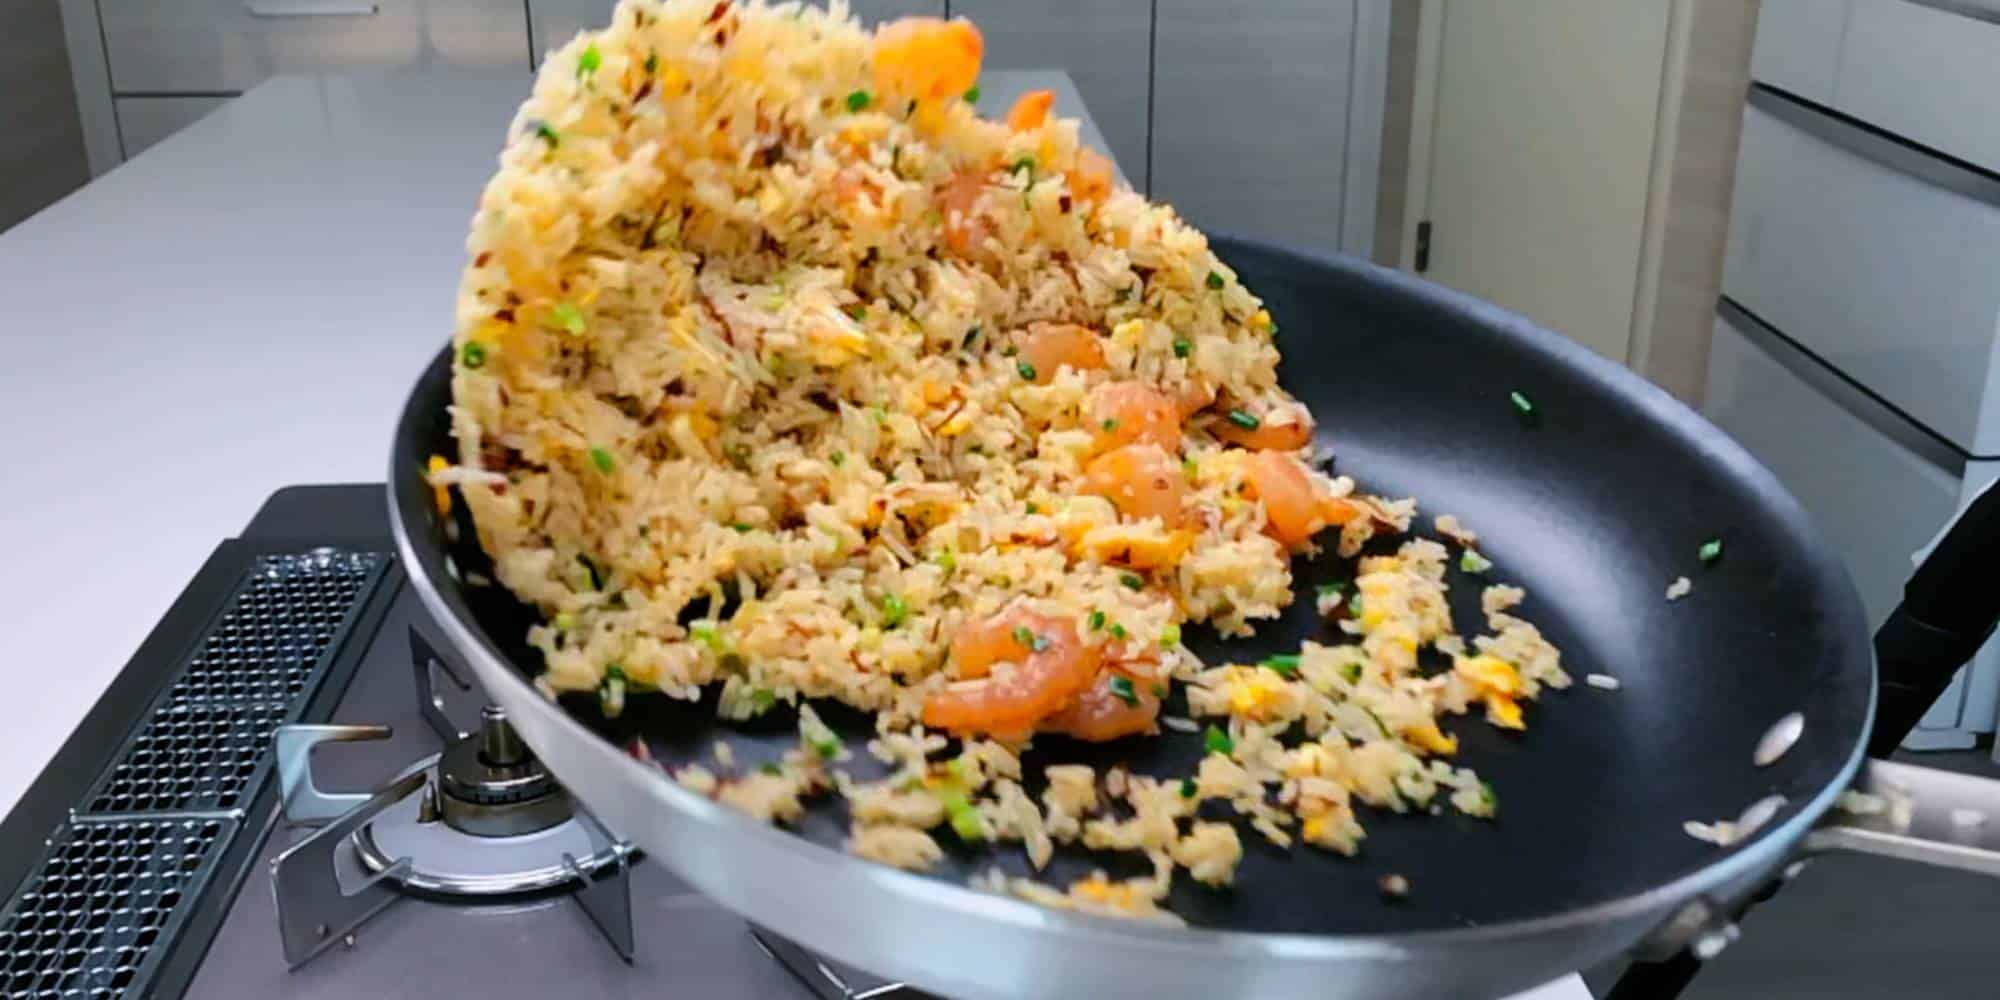 Tossing Shrimp Fried Rice in a frying pan.